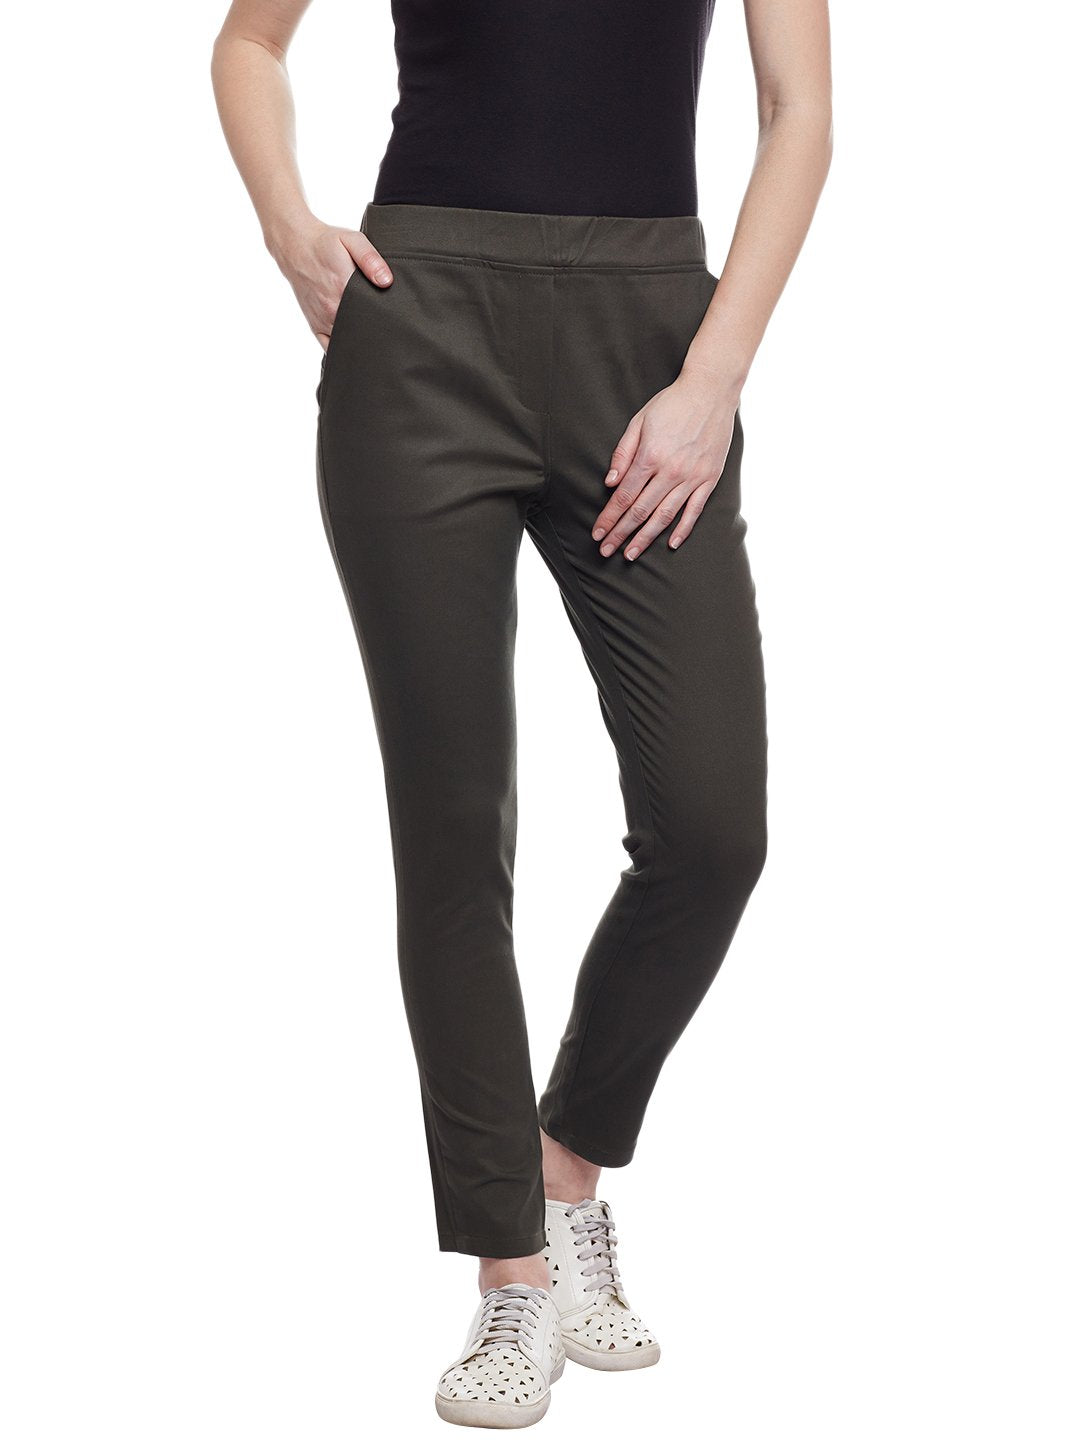 Castle Olive Cotton Spandex Jeggings